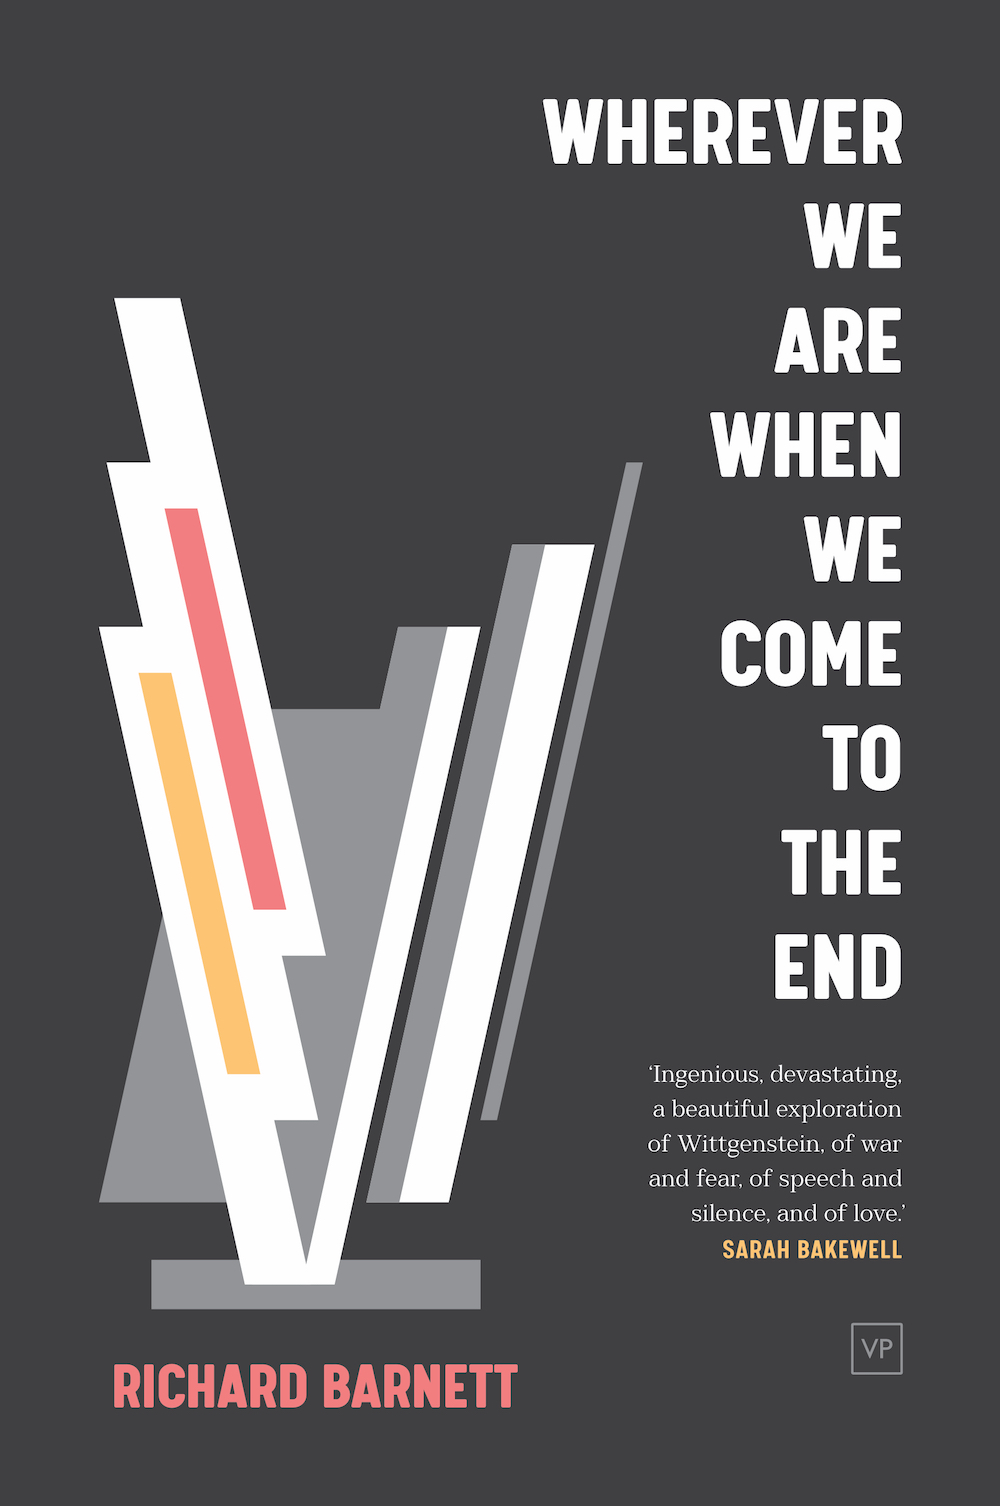 Wherever final cover front